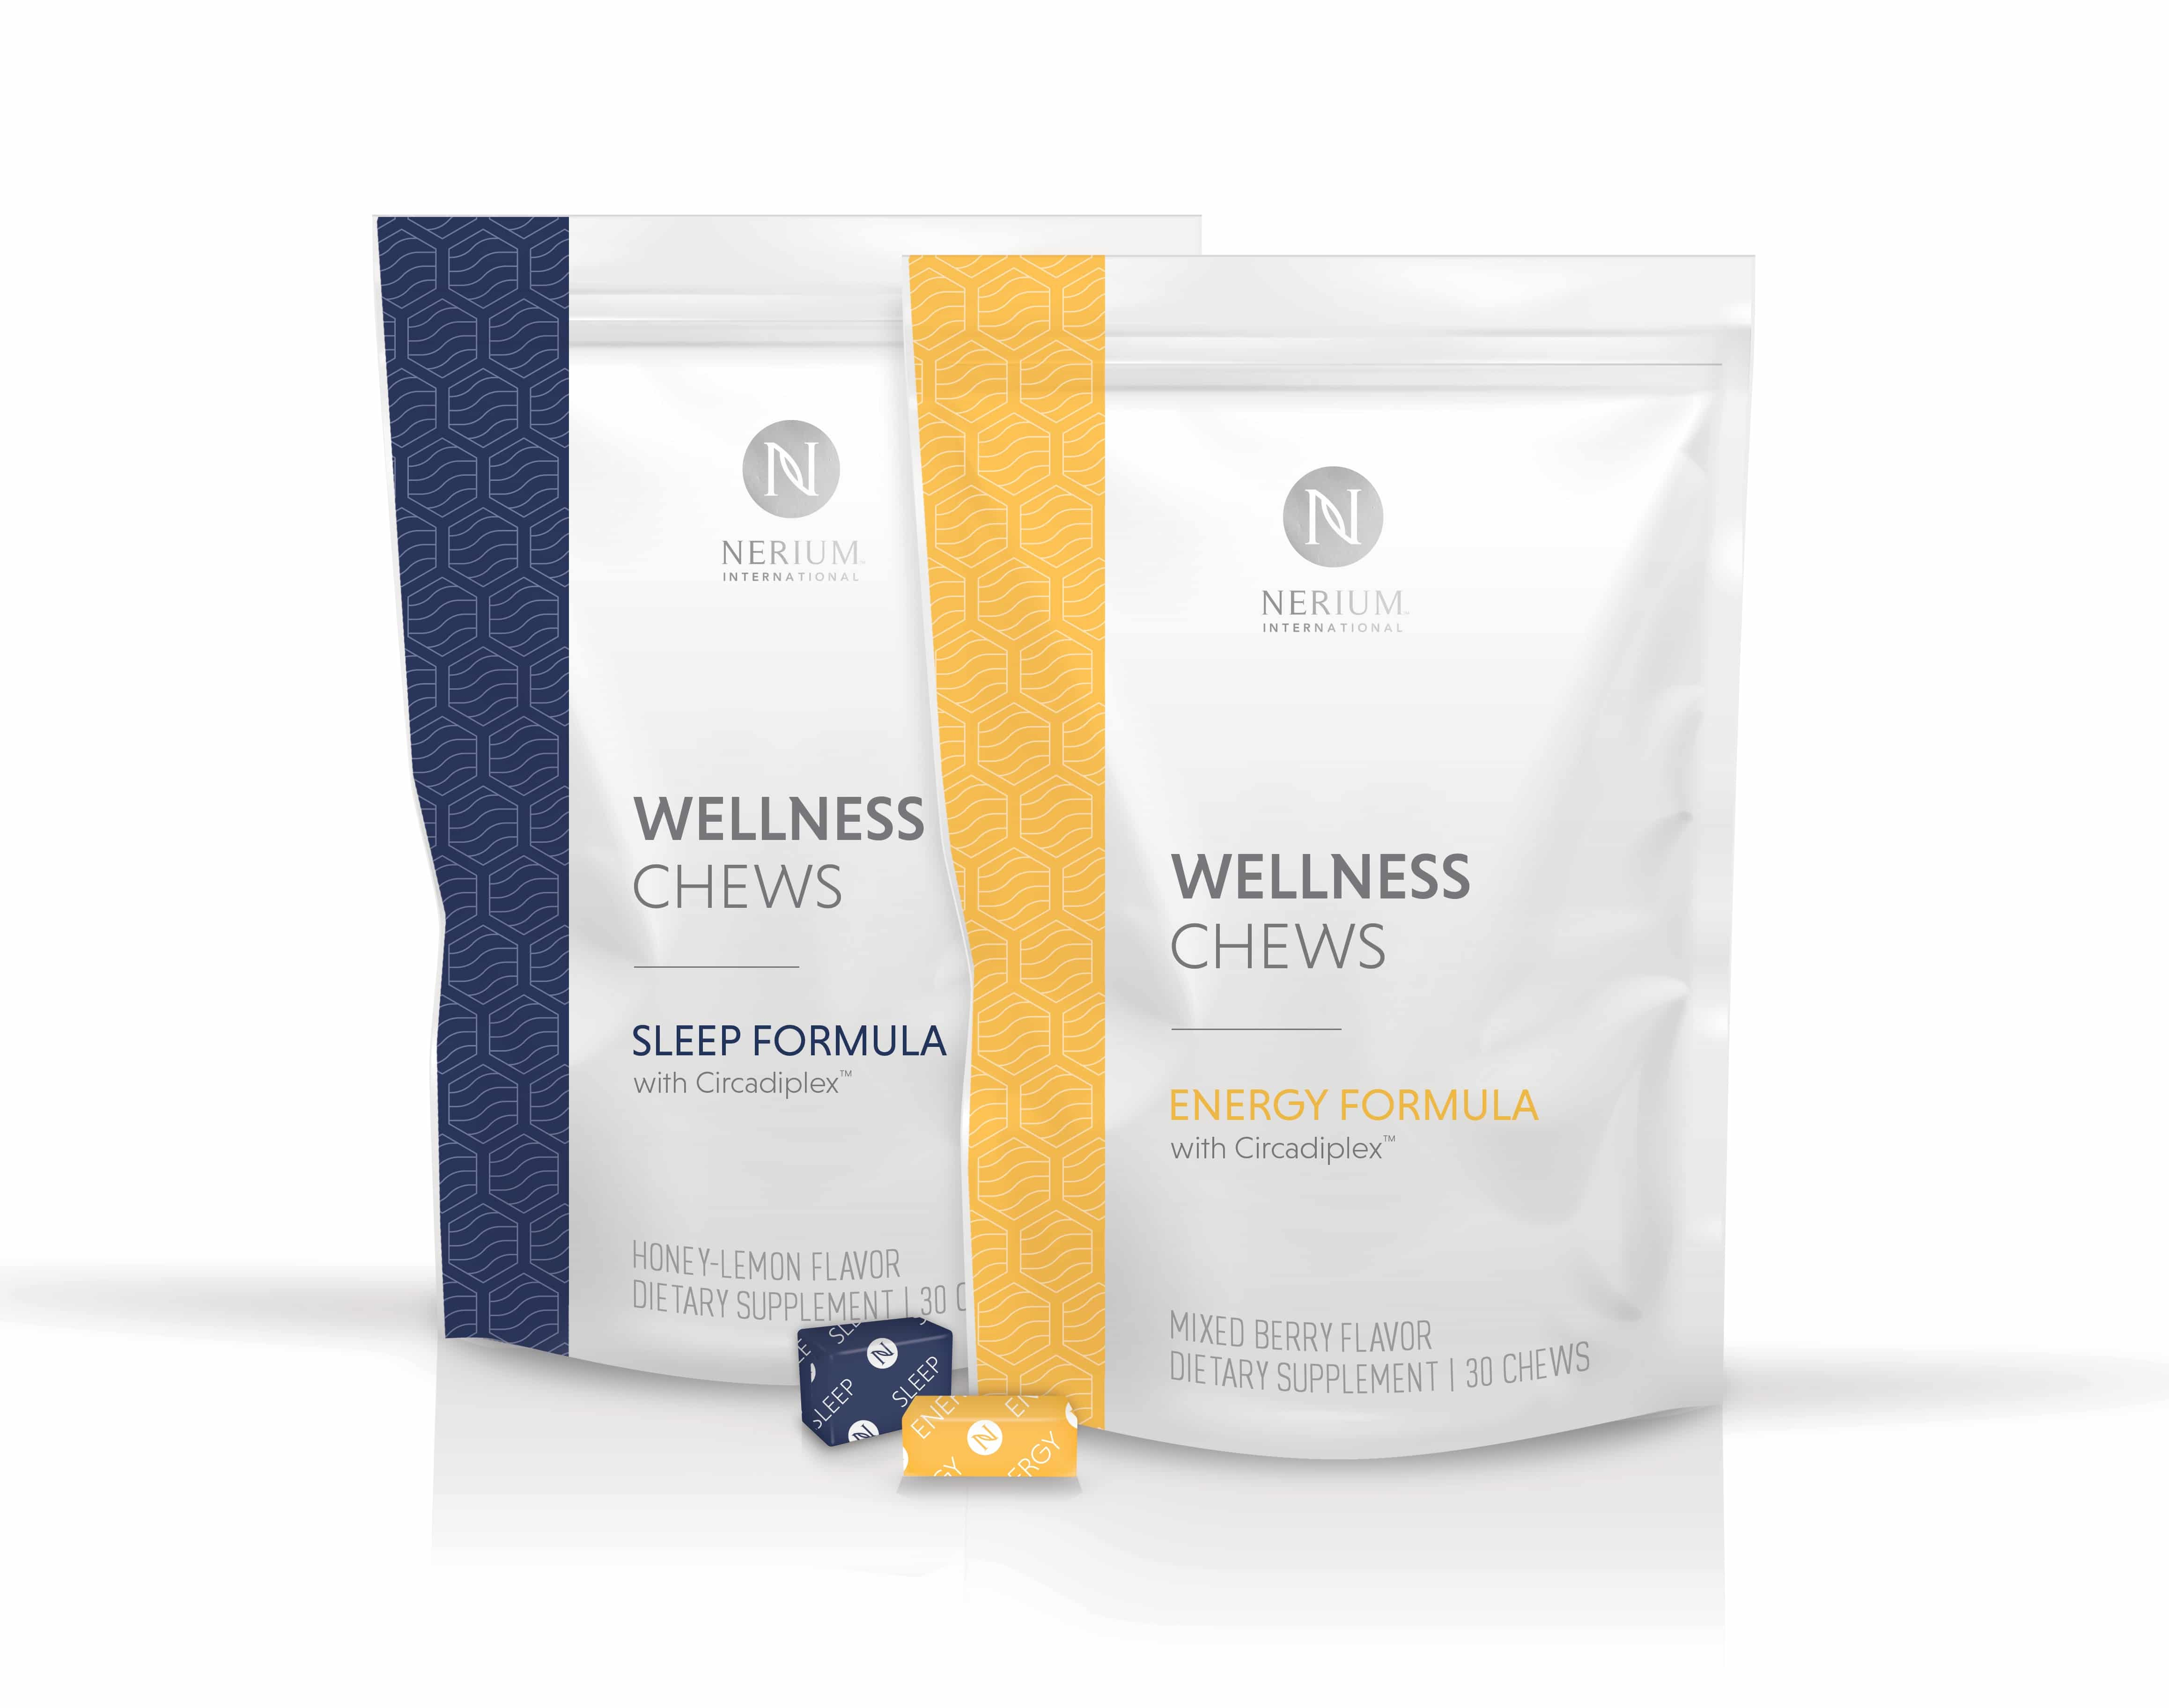 Nerium International Introduces Wellness Chews in Energy and Sleep Formulas